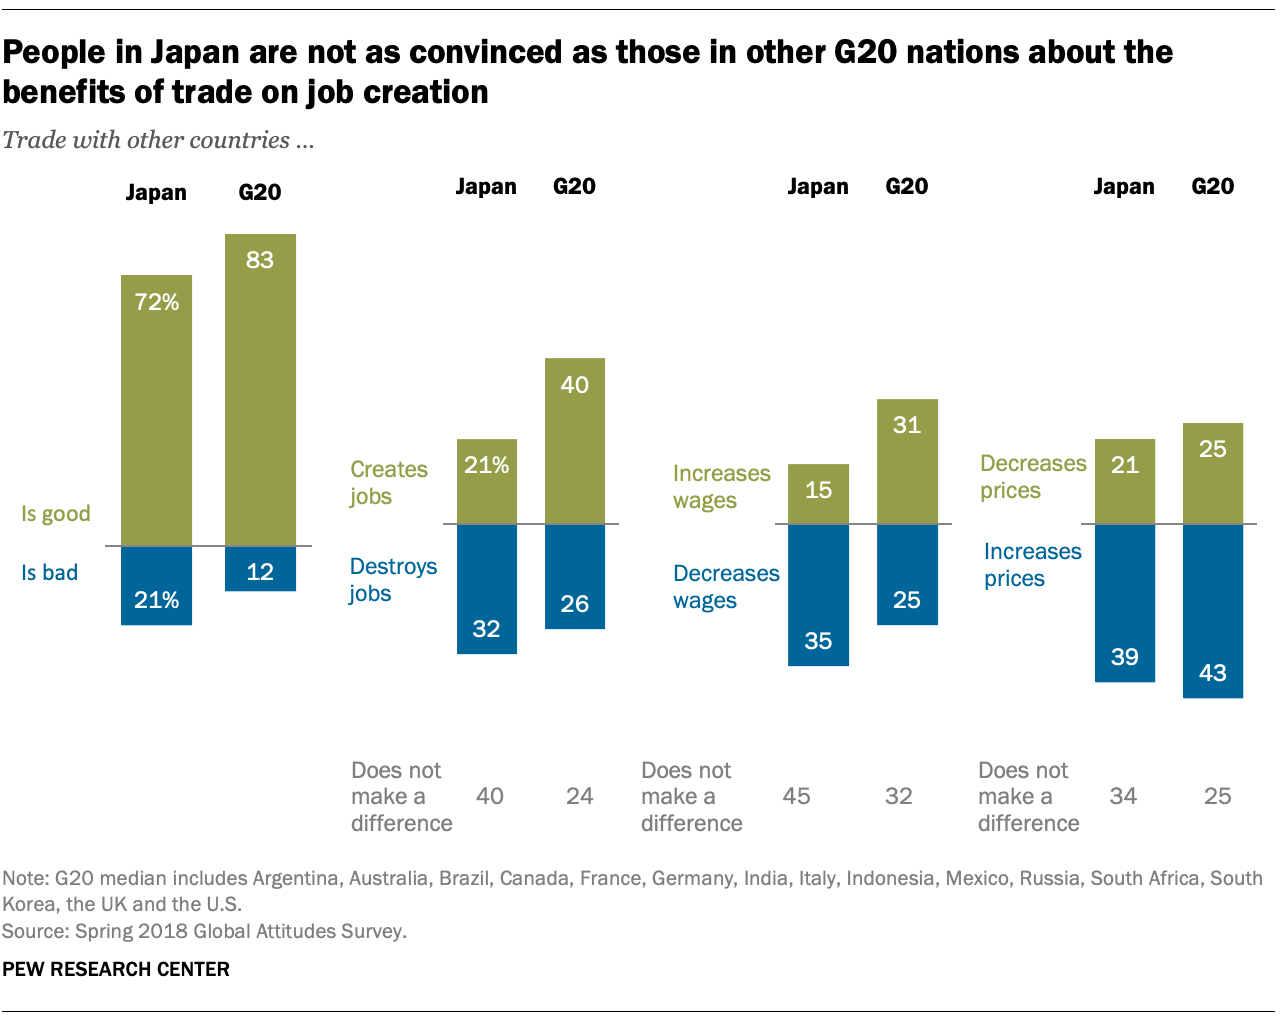 People in Japan are not as convinced as those in other G20 nations about the benefits of trade on job creation